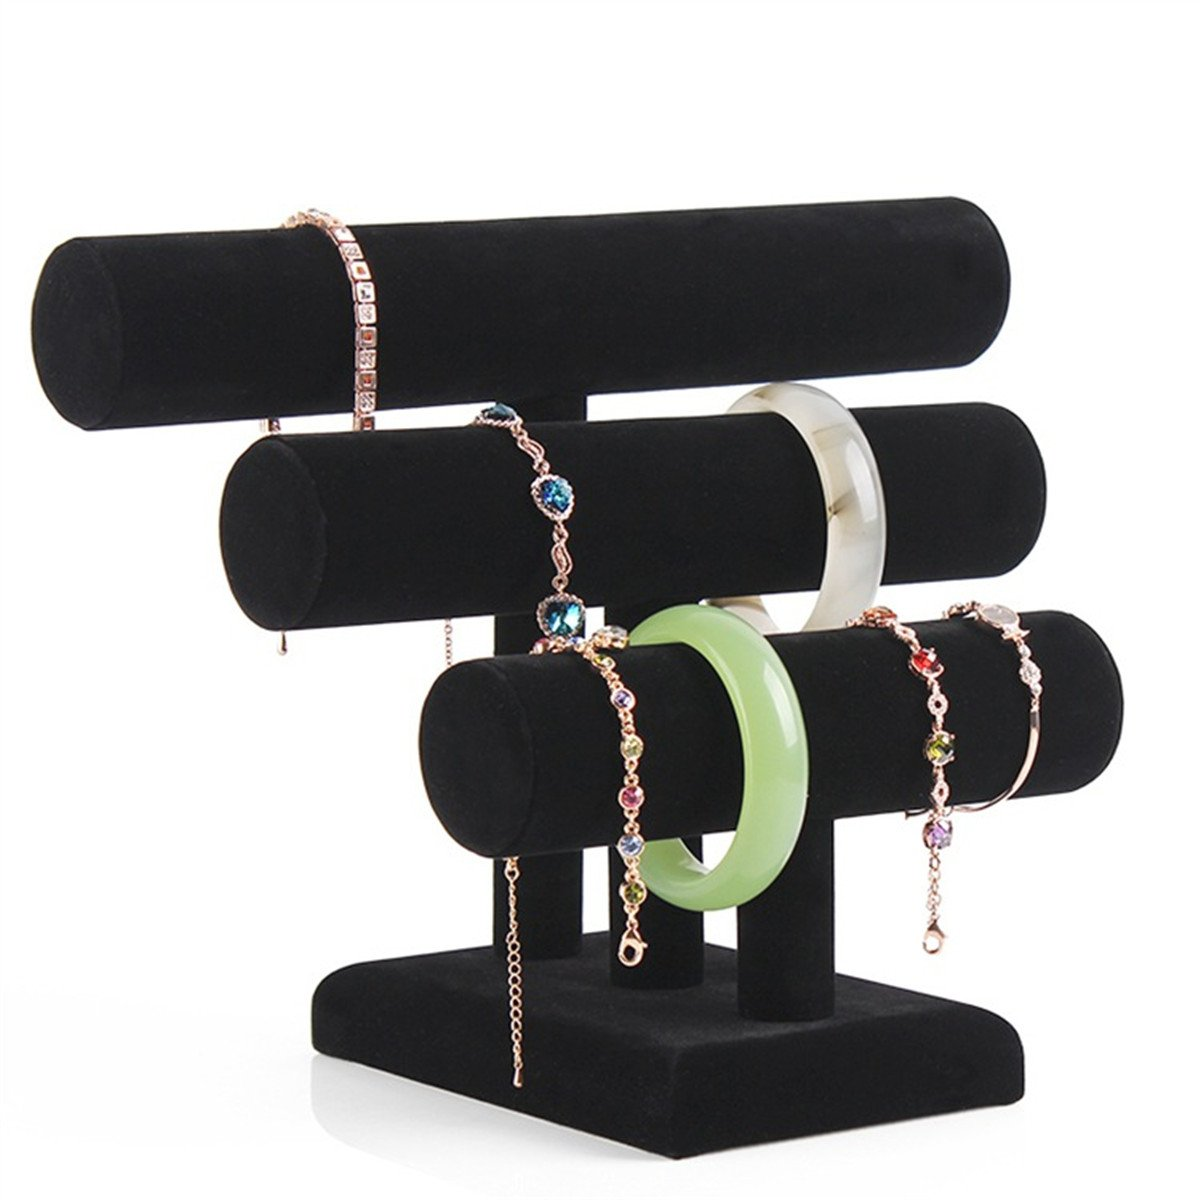 Zebratown 3 Layers Black Velvet Jewellry Bangel Bracelet T-Bar Jewelry Display Bangle Jewelry Organizer Holder